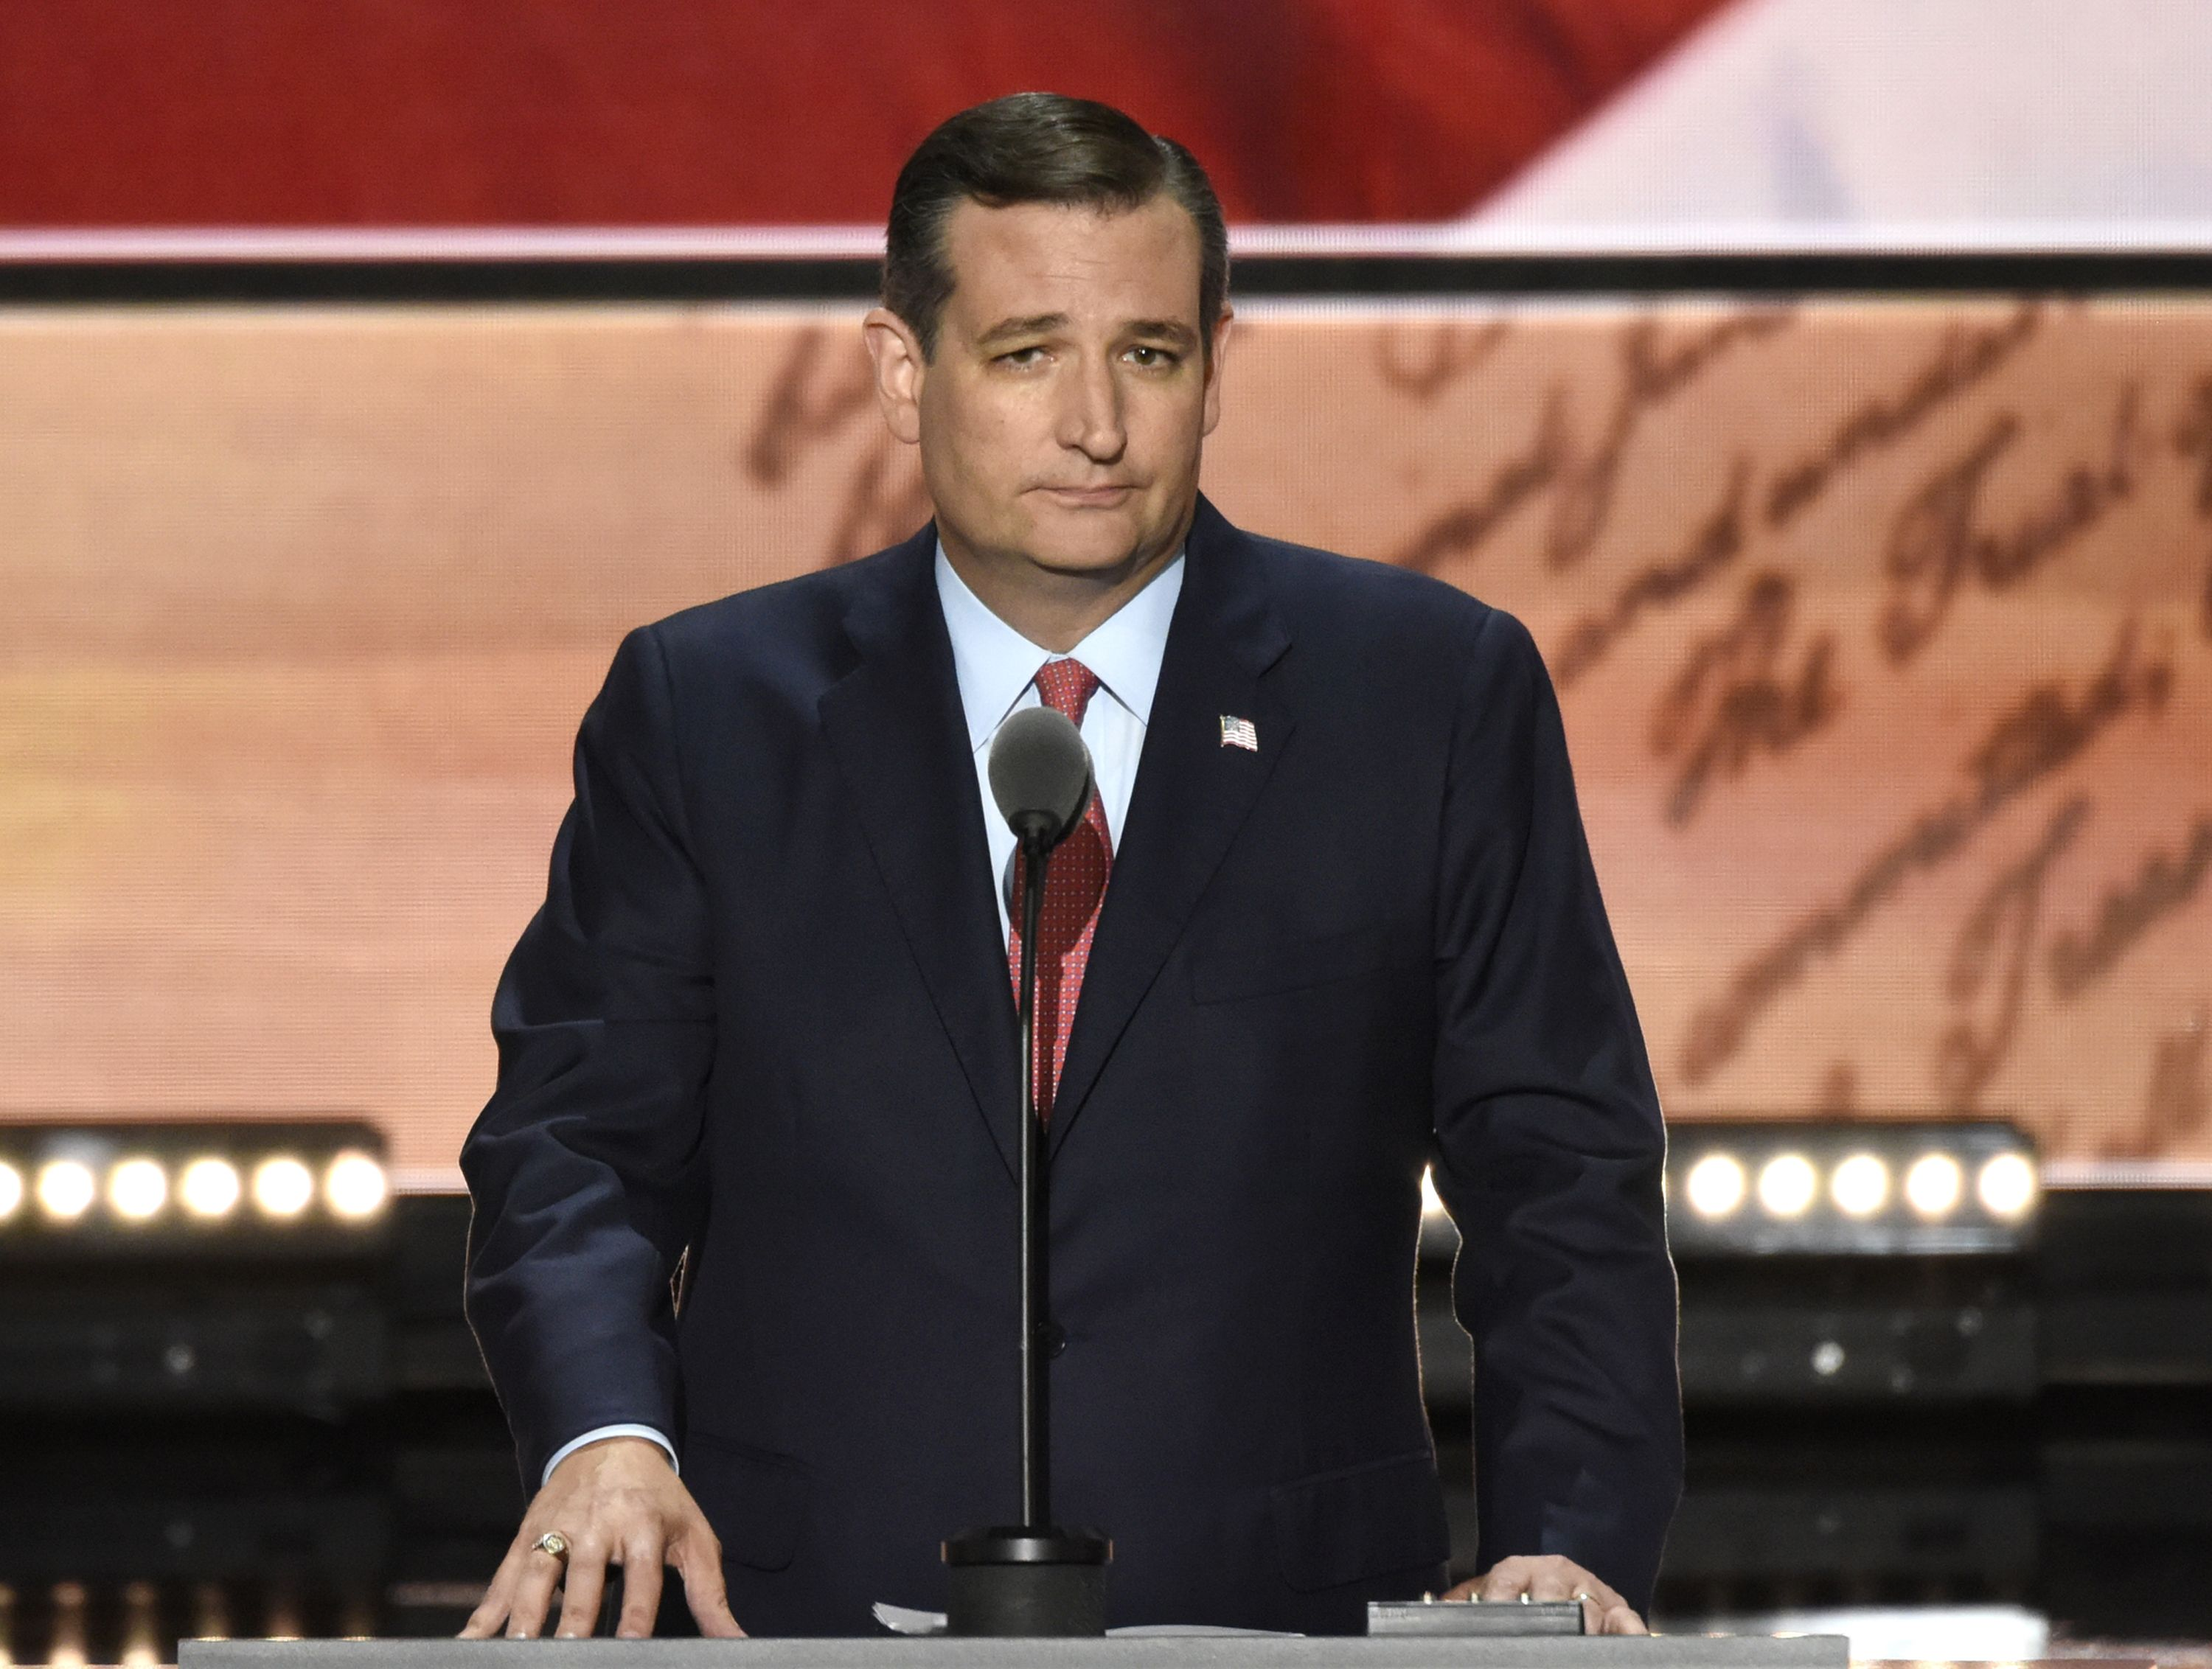 Ted Cruz's Tacky Joke About Disney and Notre Dame Has Caught the Internet's Ire